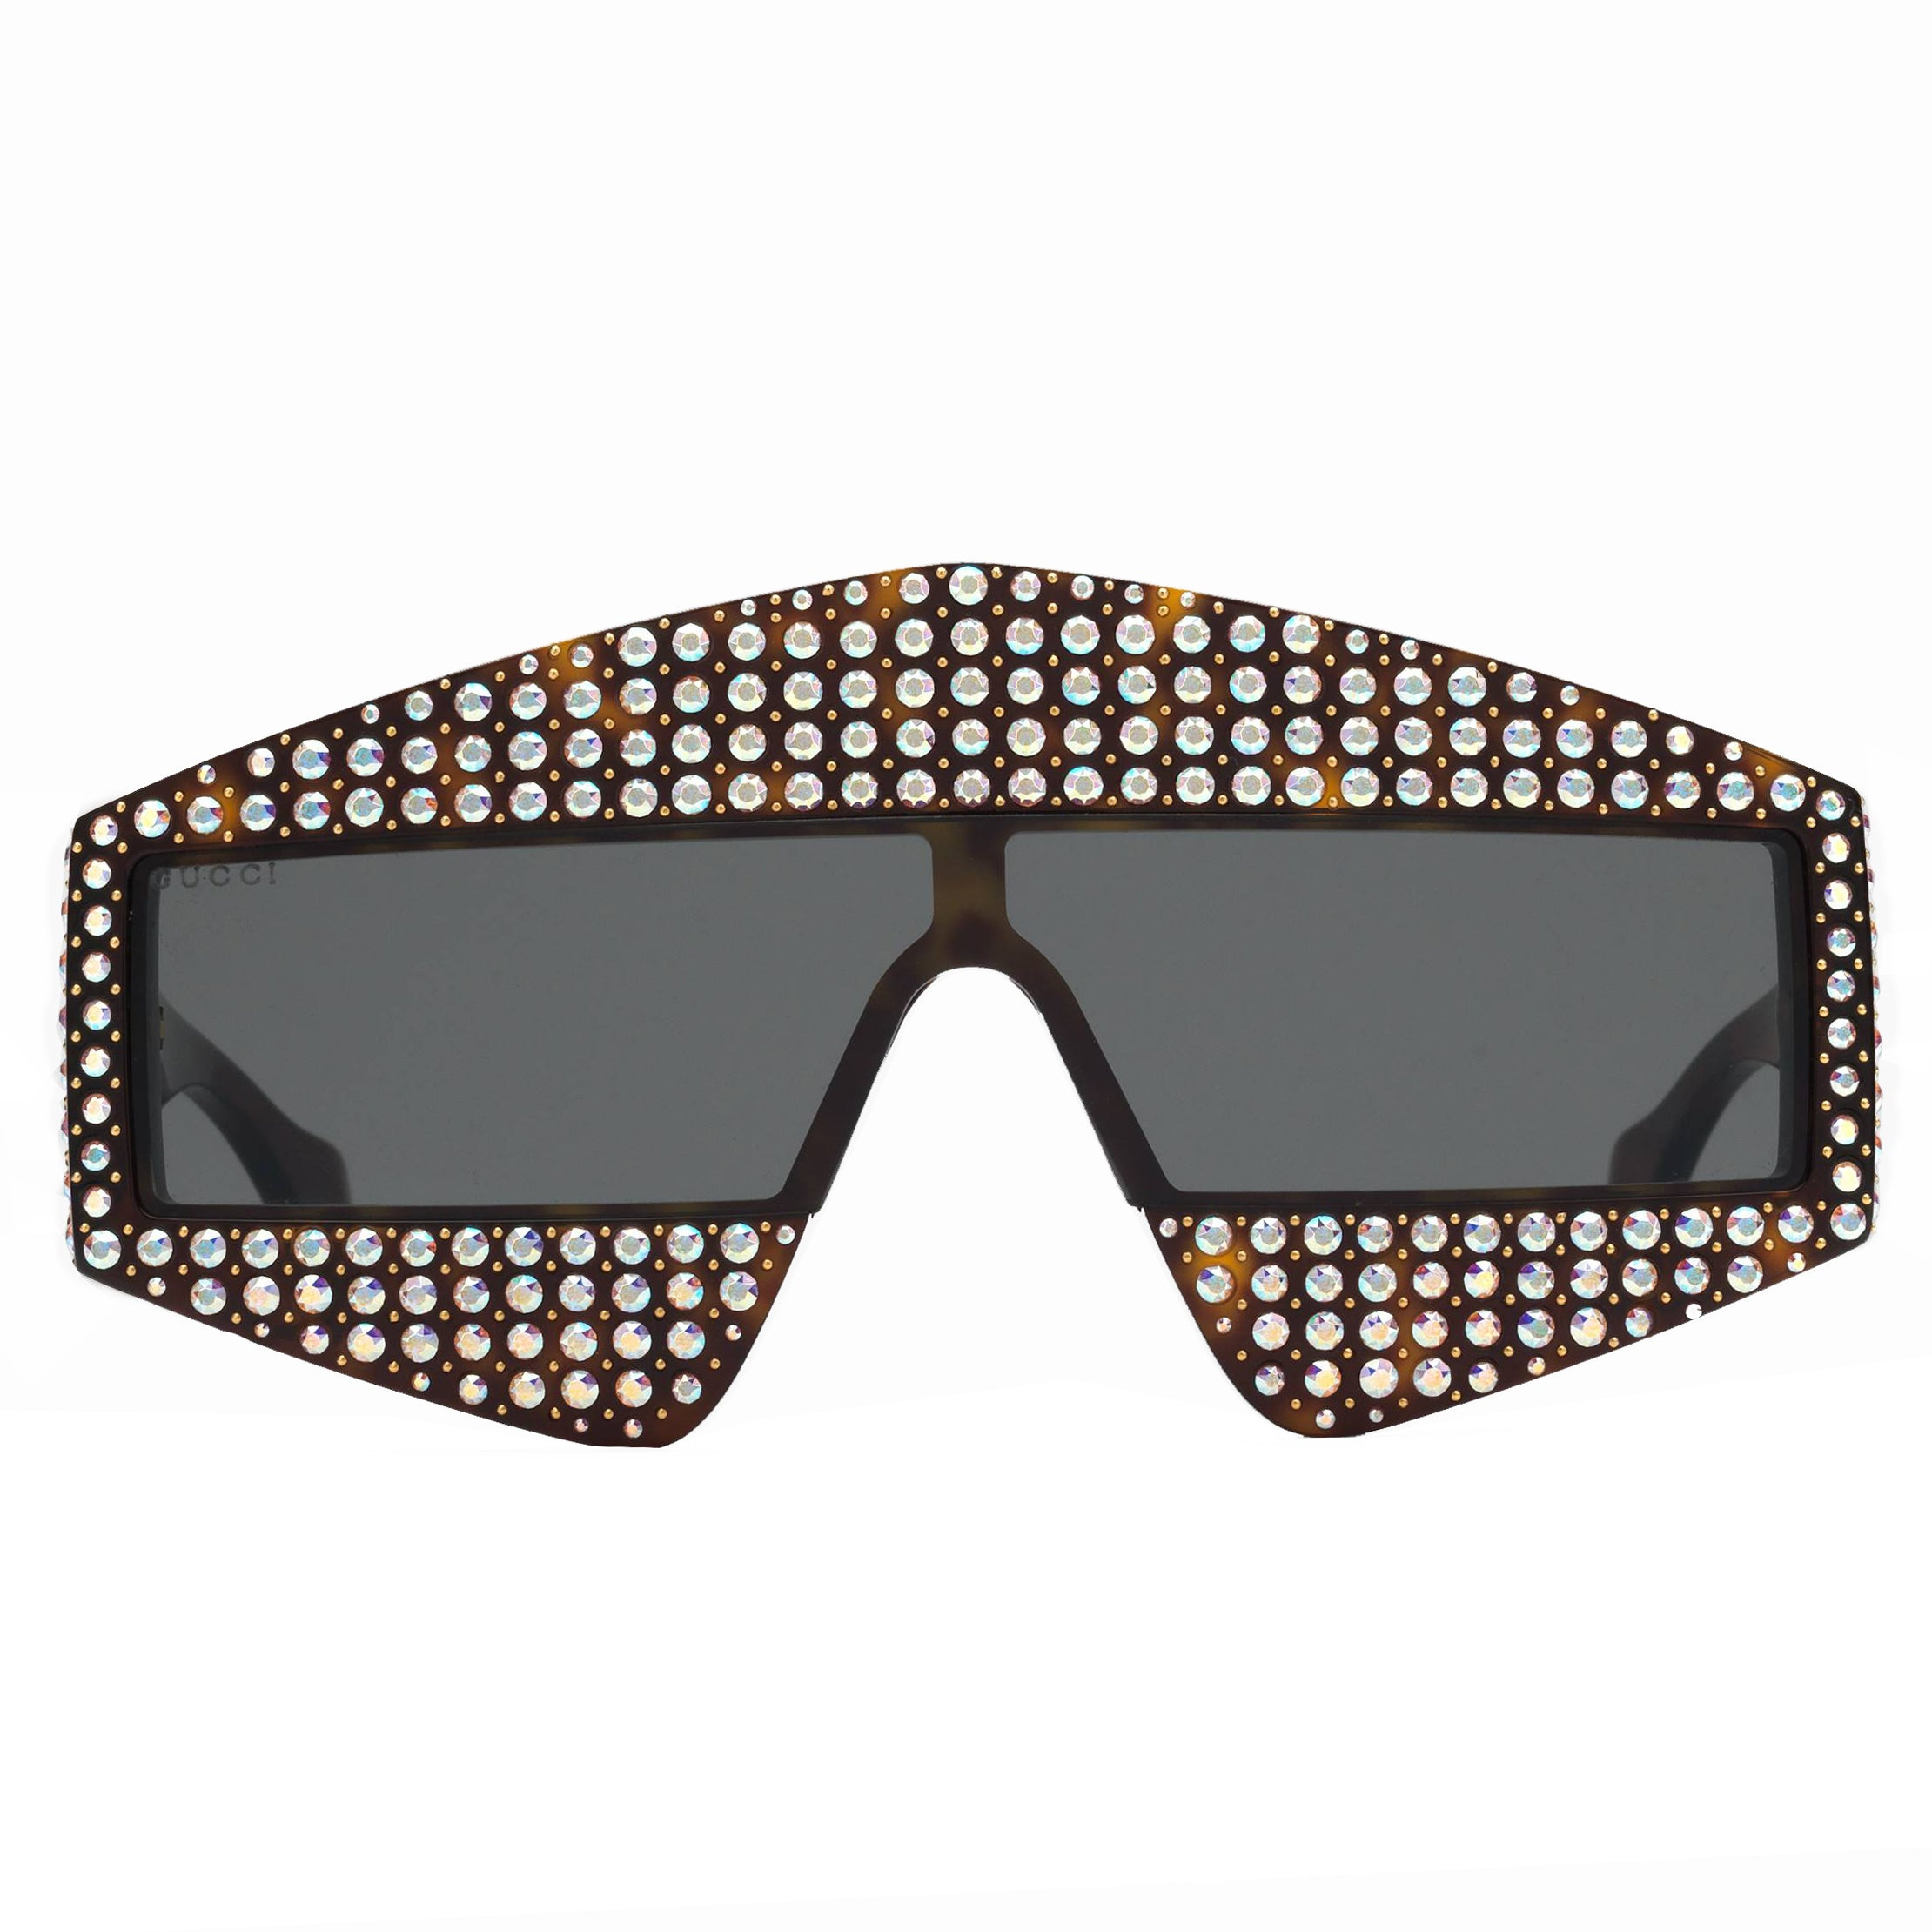 e66141c879 Rectangular Frame Acetate Sunglasses With Crystals – PureAtlanta.com